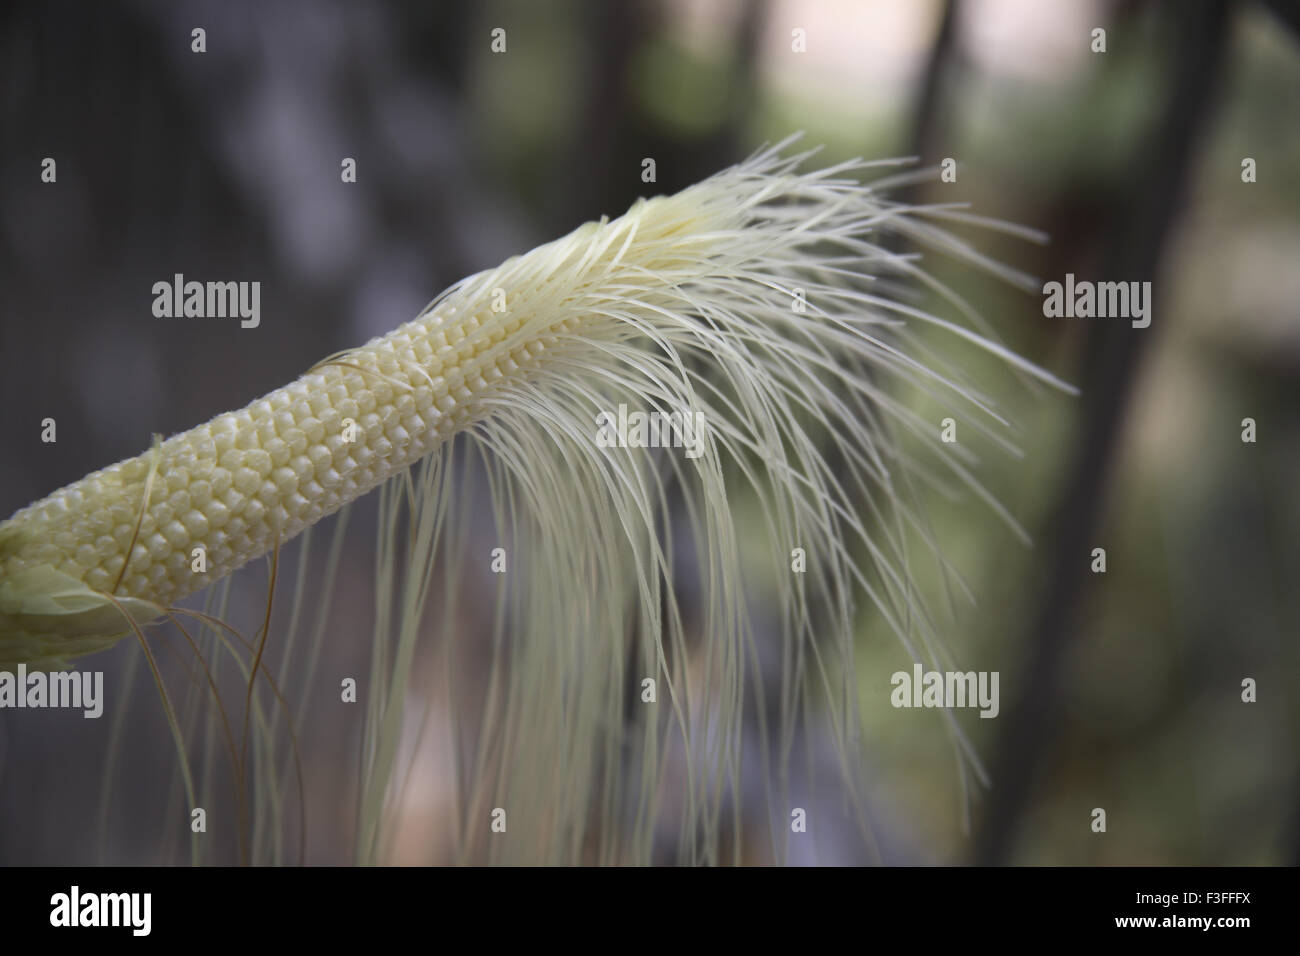 Crop ; Baby Corn ; Maize ; Zea mays ; Used in Salads or vegetables ; India - Stock Image